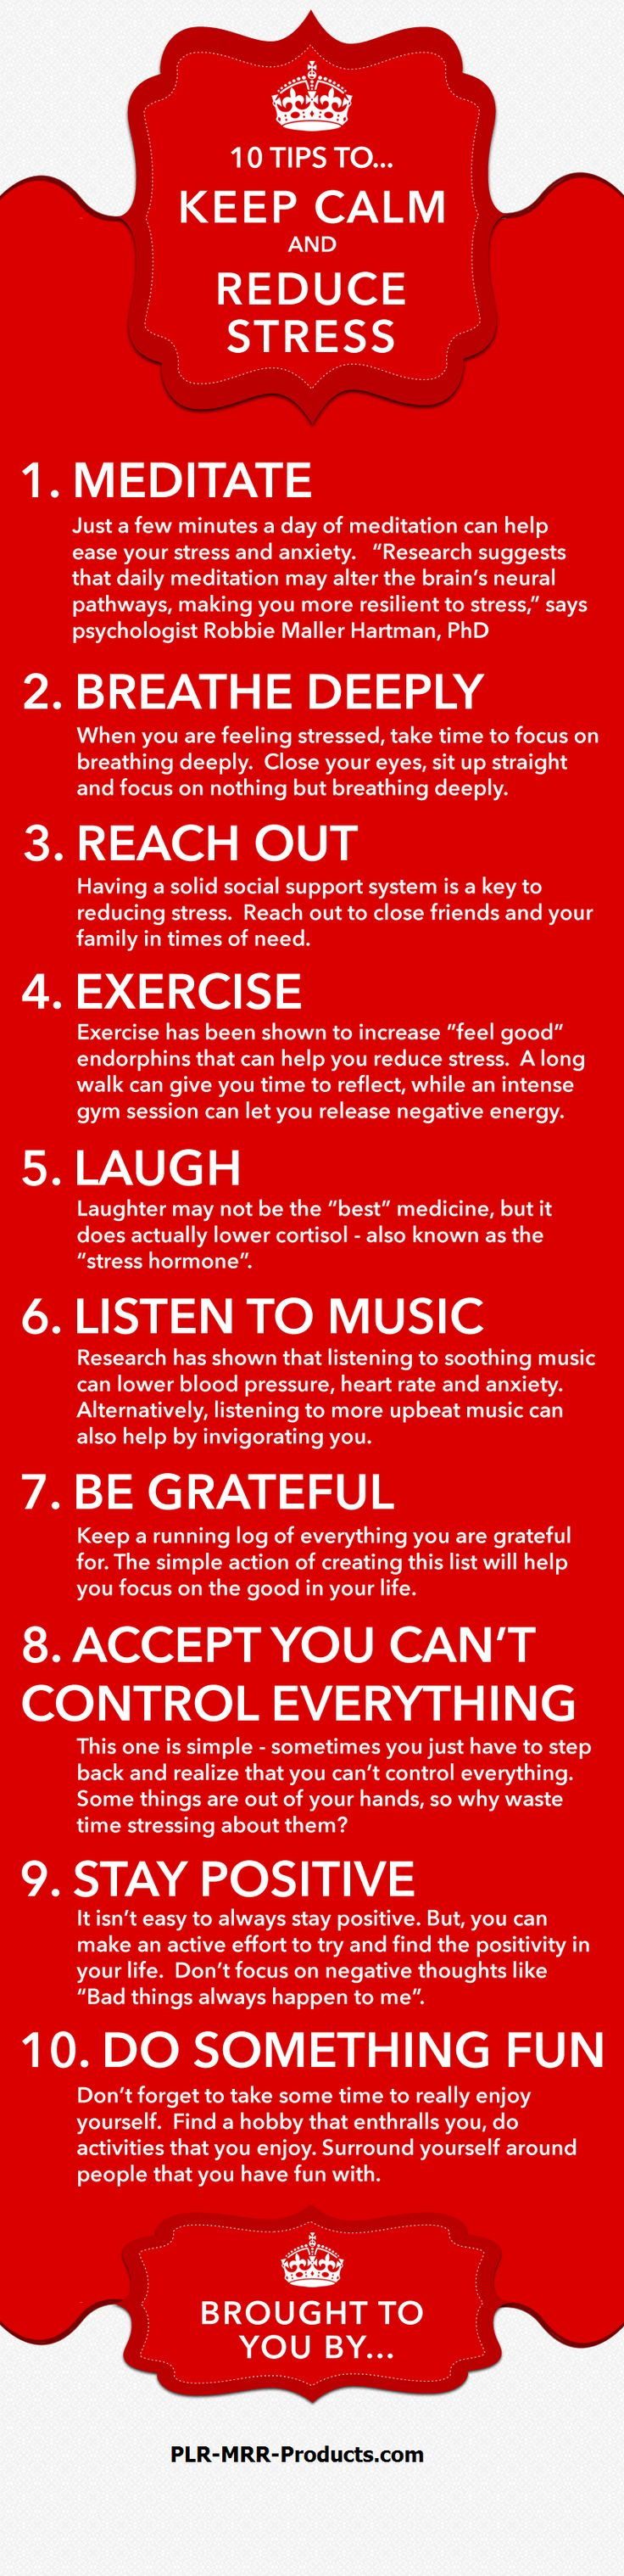 10 tips to stay calm and reduce stress...PRAYER IS MY #1 ❤️